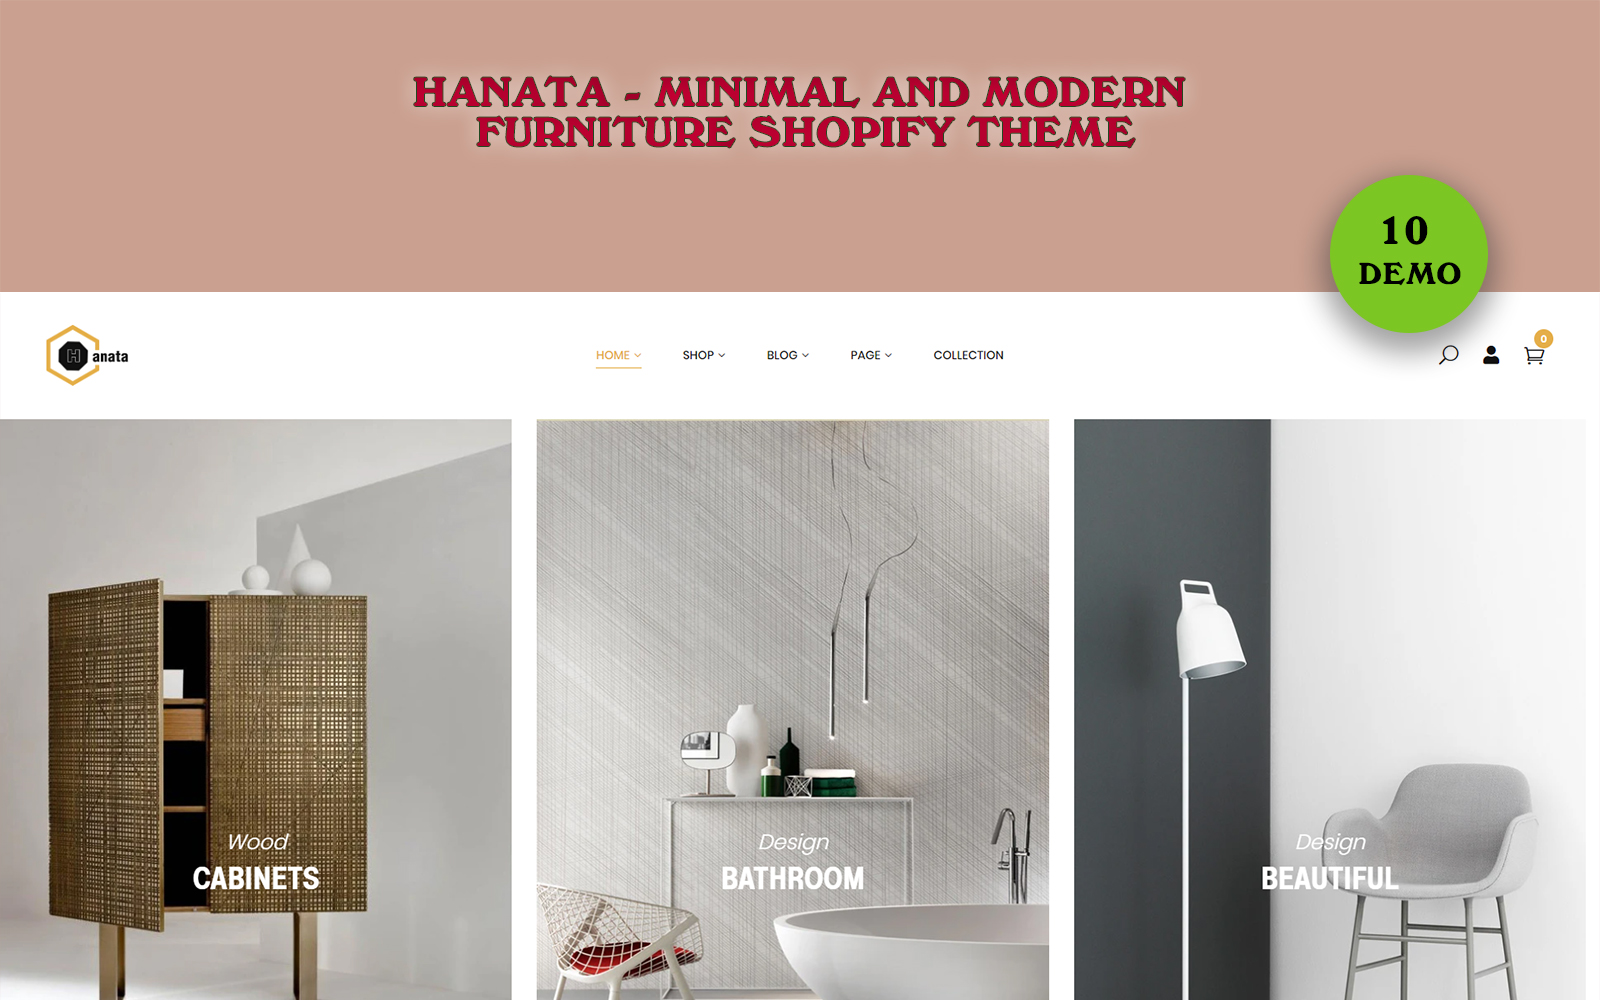 Hanata - Minimal and Modern Furniture Shopify Theme